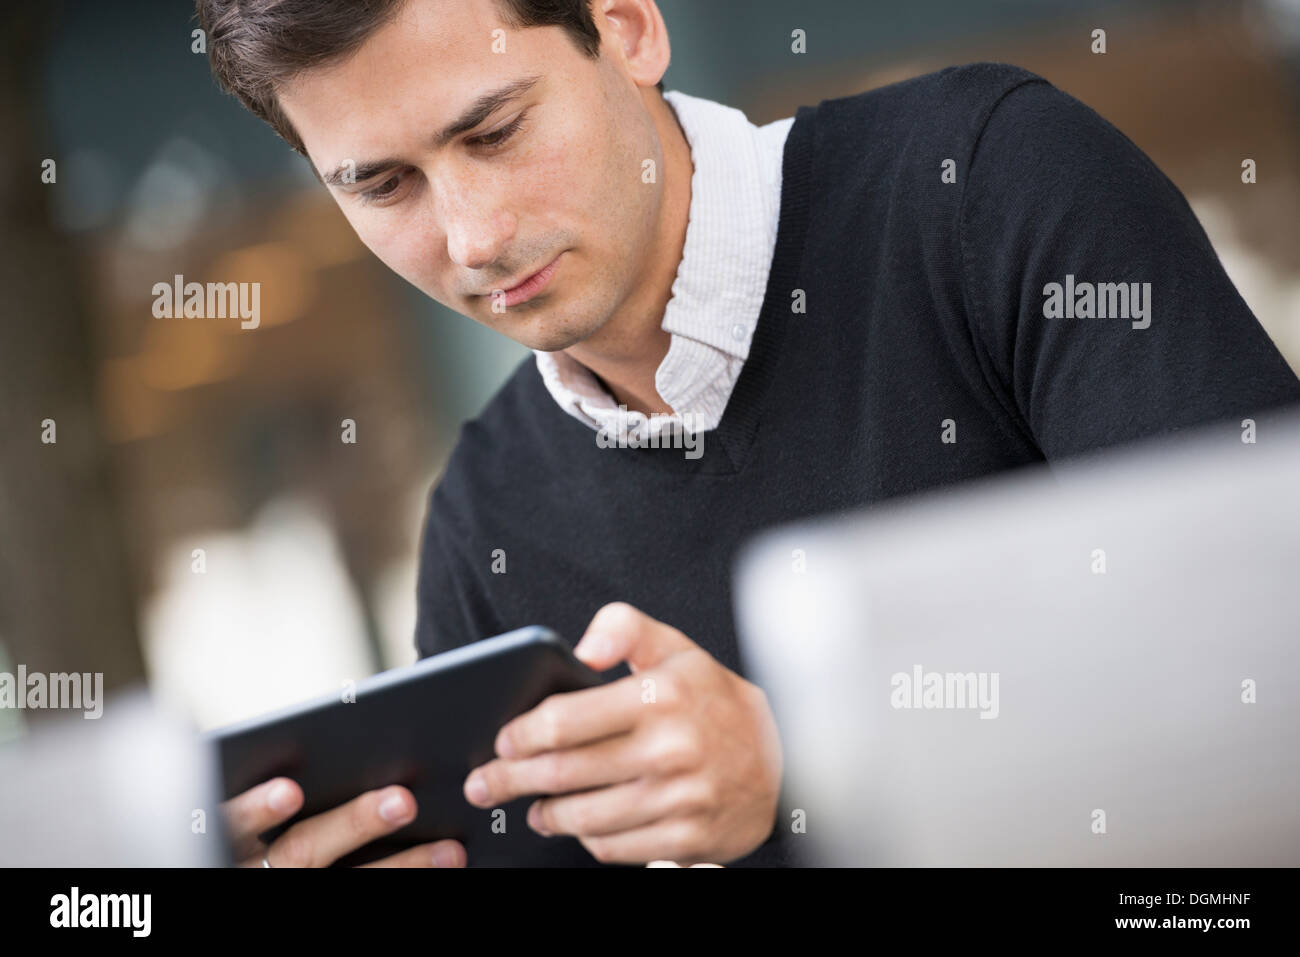 Summer in the city. A man sitting on a bench using a digital tablet. - Stock Image